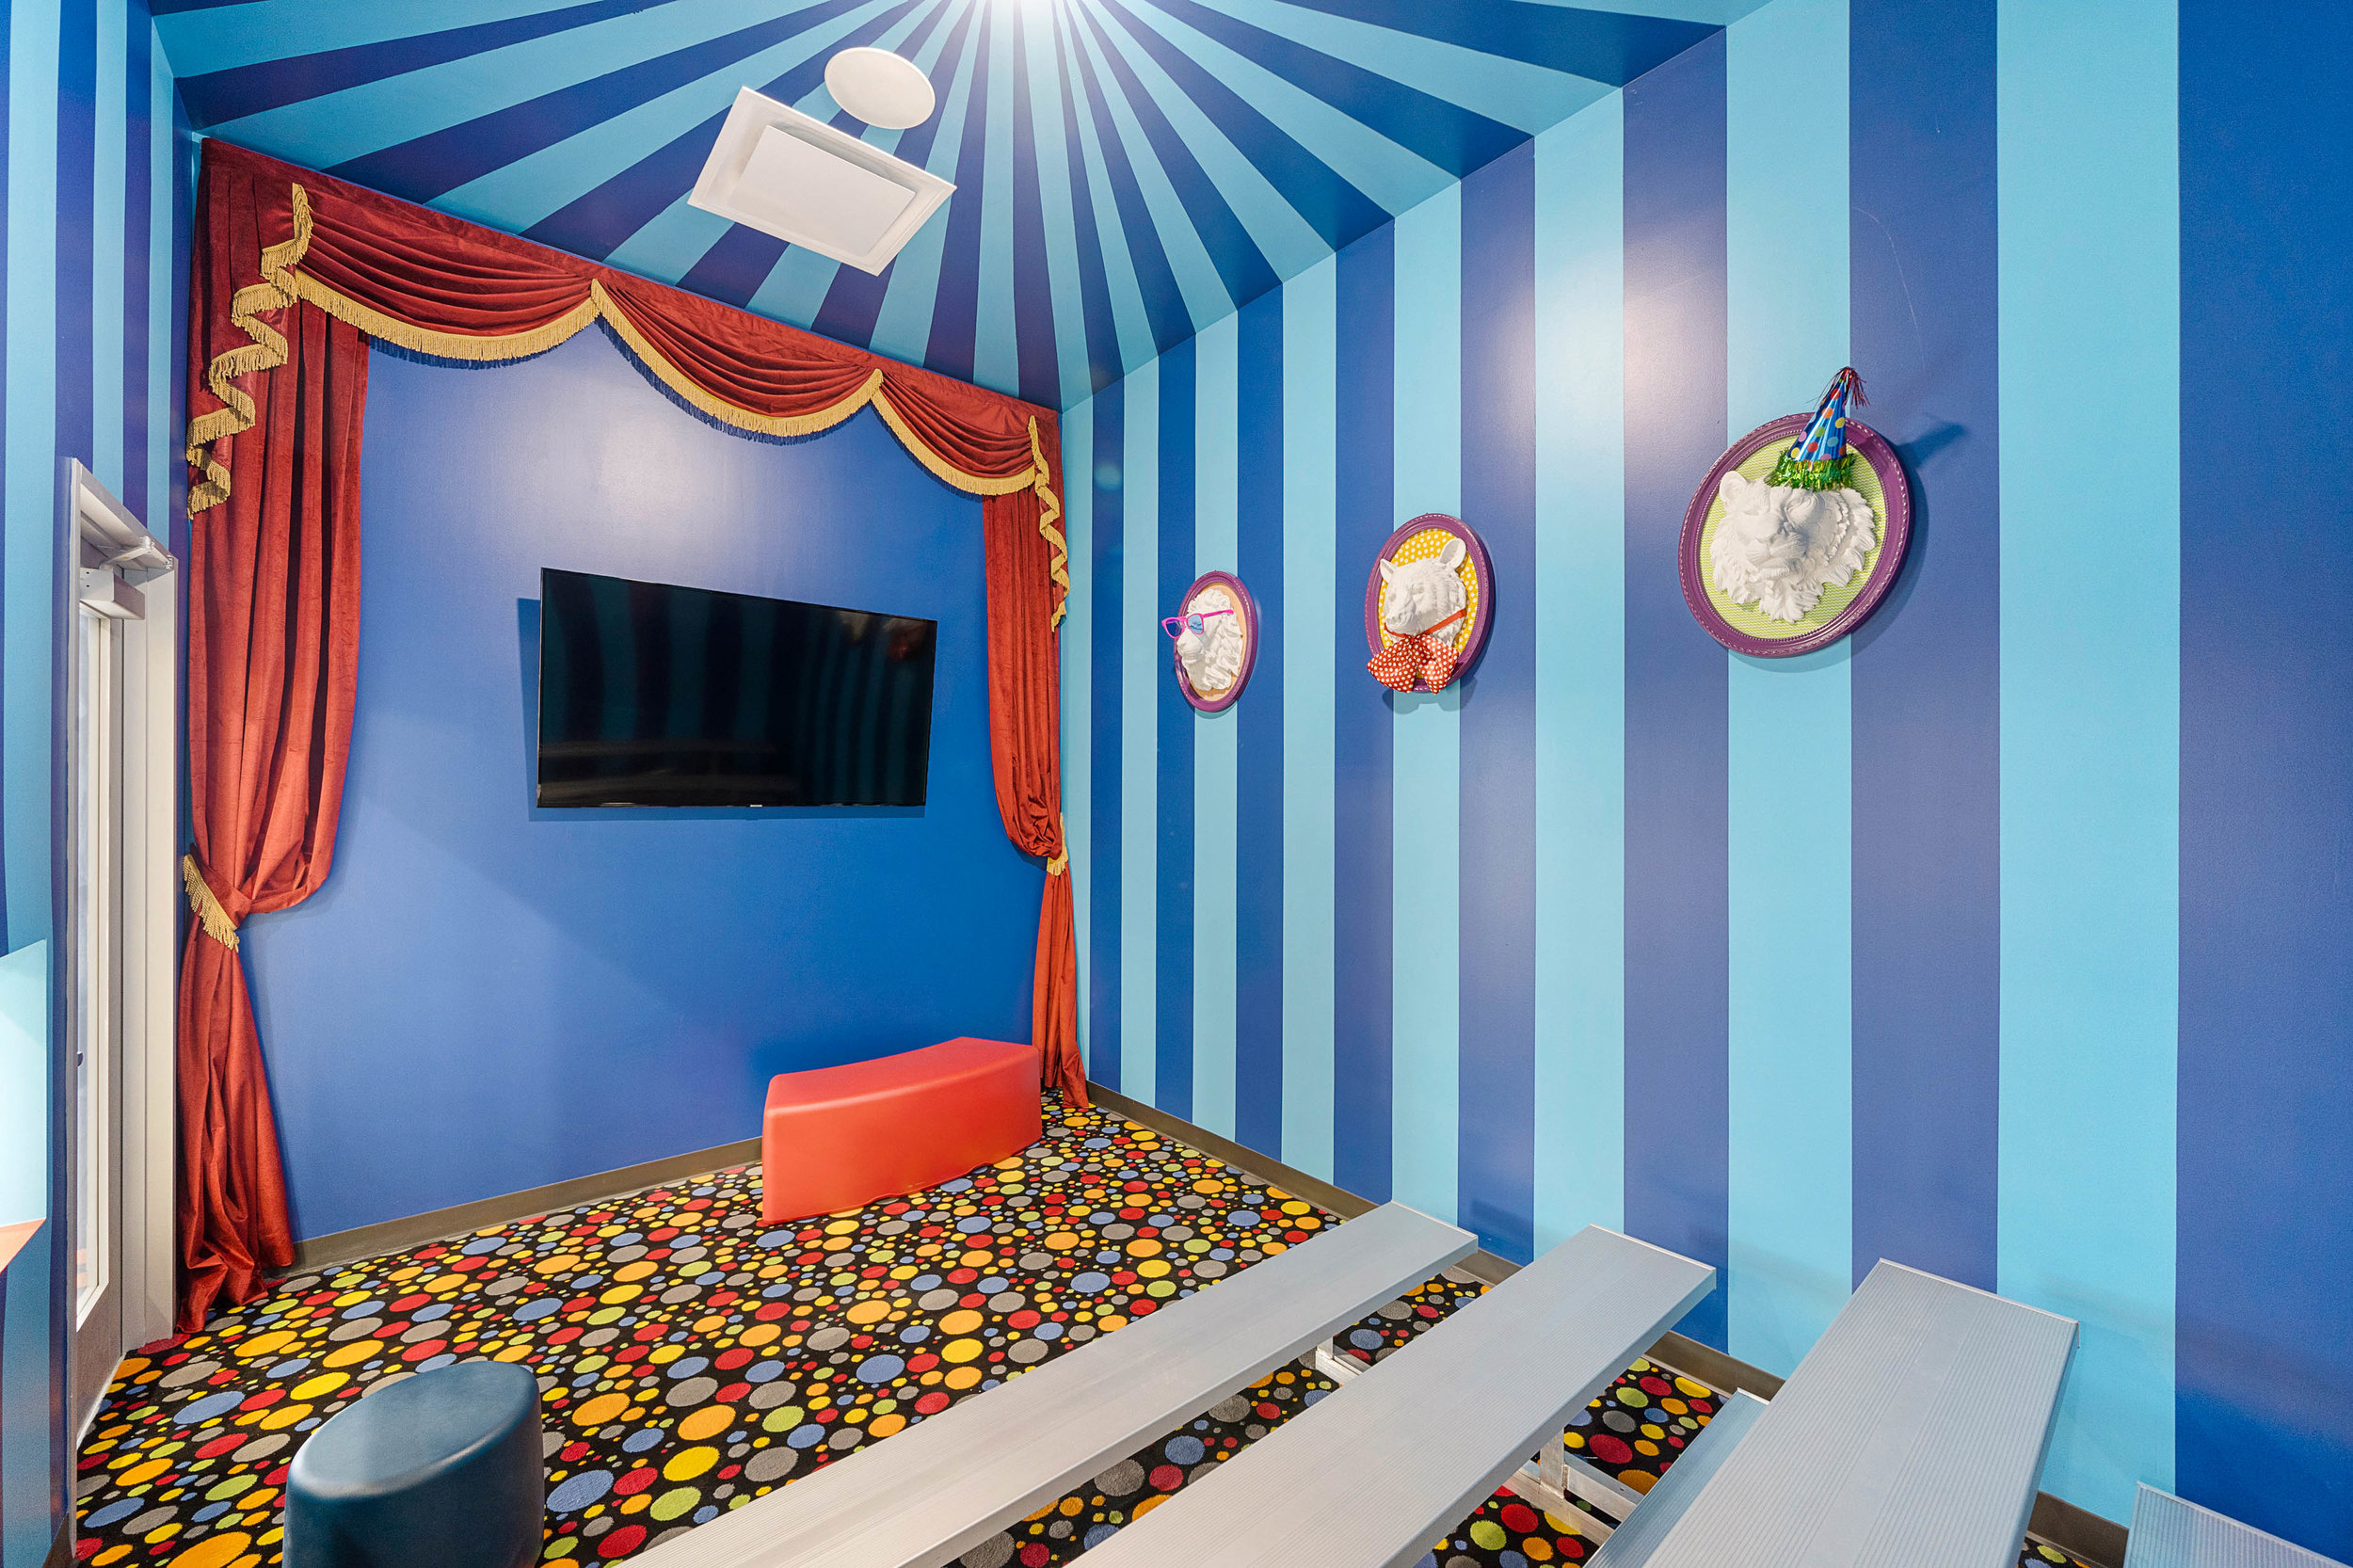 PEDIATRIC DENTIST MOVIE ROOM HOUSTON TEXAS 77022.jpg